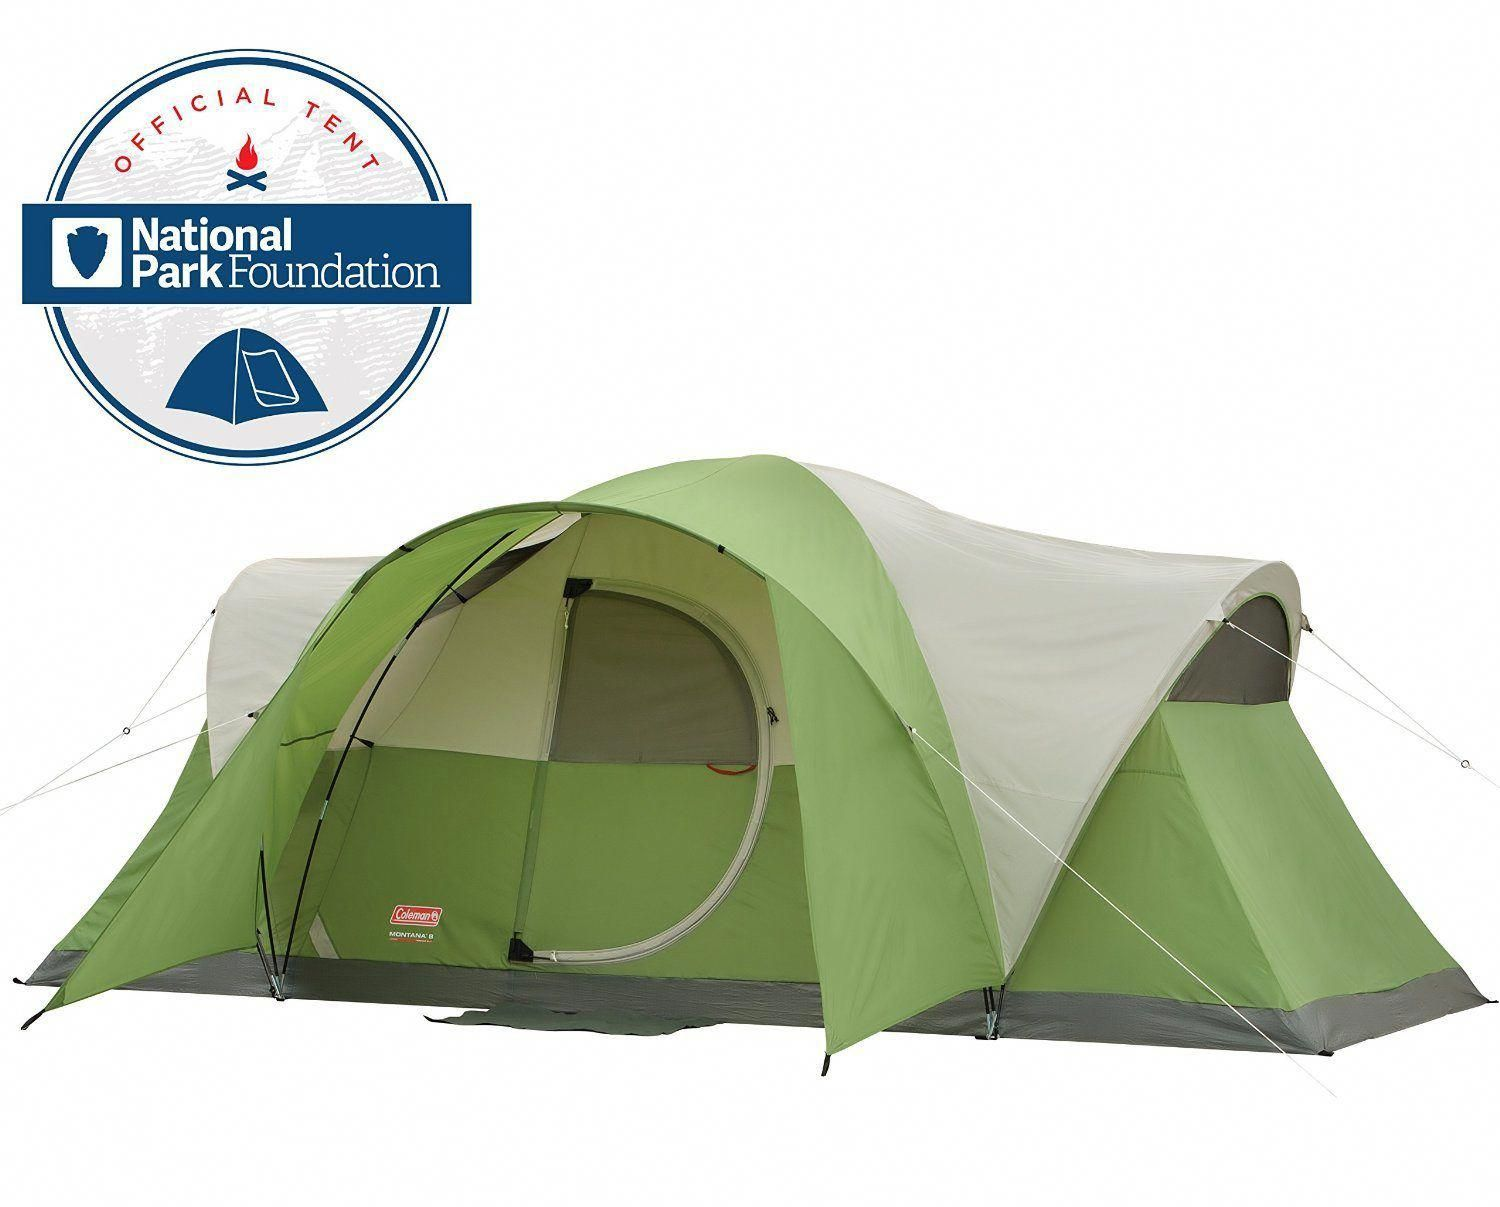 Cool Top 10 Best Instant Tents In 2016 Reviews Bestcampingtents Best Tents For Camping Family Tent Camping Coleman Tent